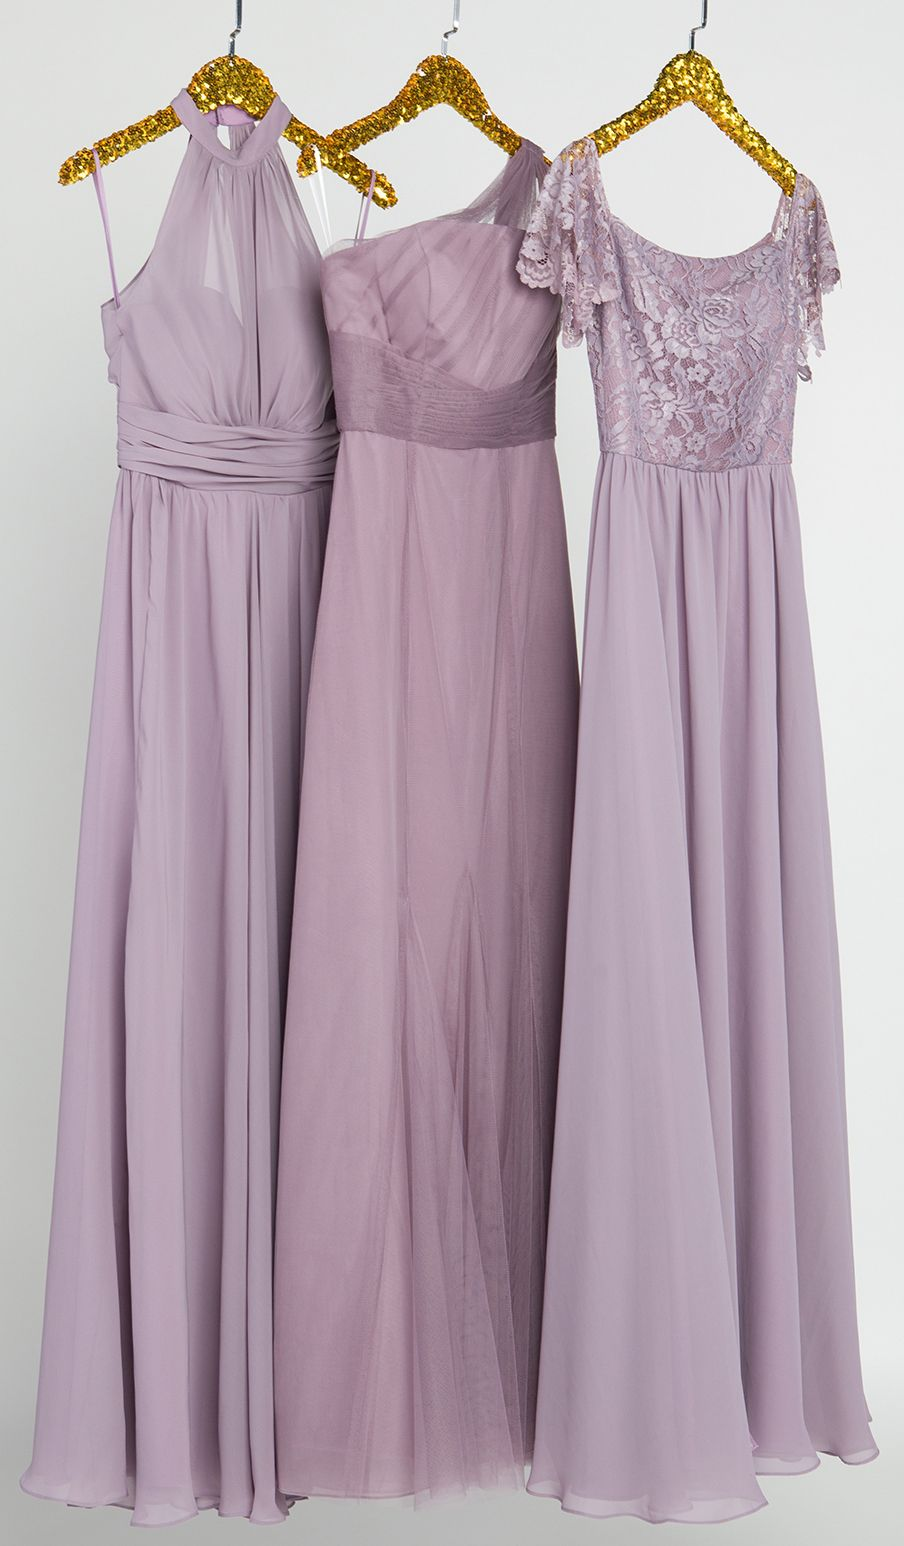 Short purple wedding dresses  Long u Short Bridesmaid Dresses From  in Size  and  Color